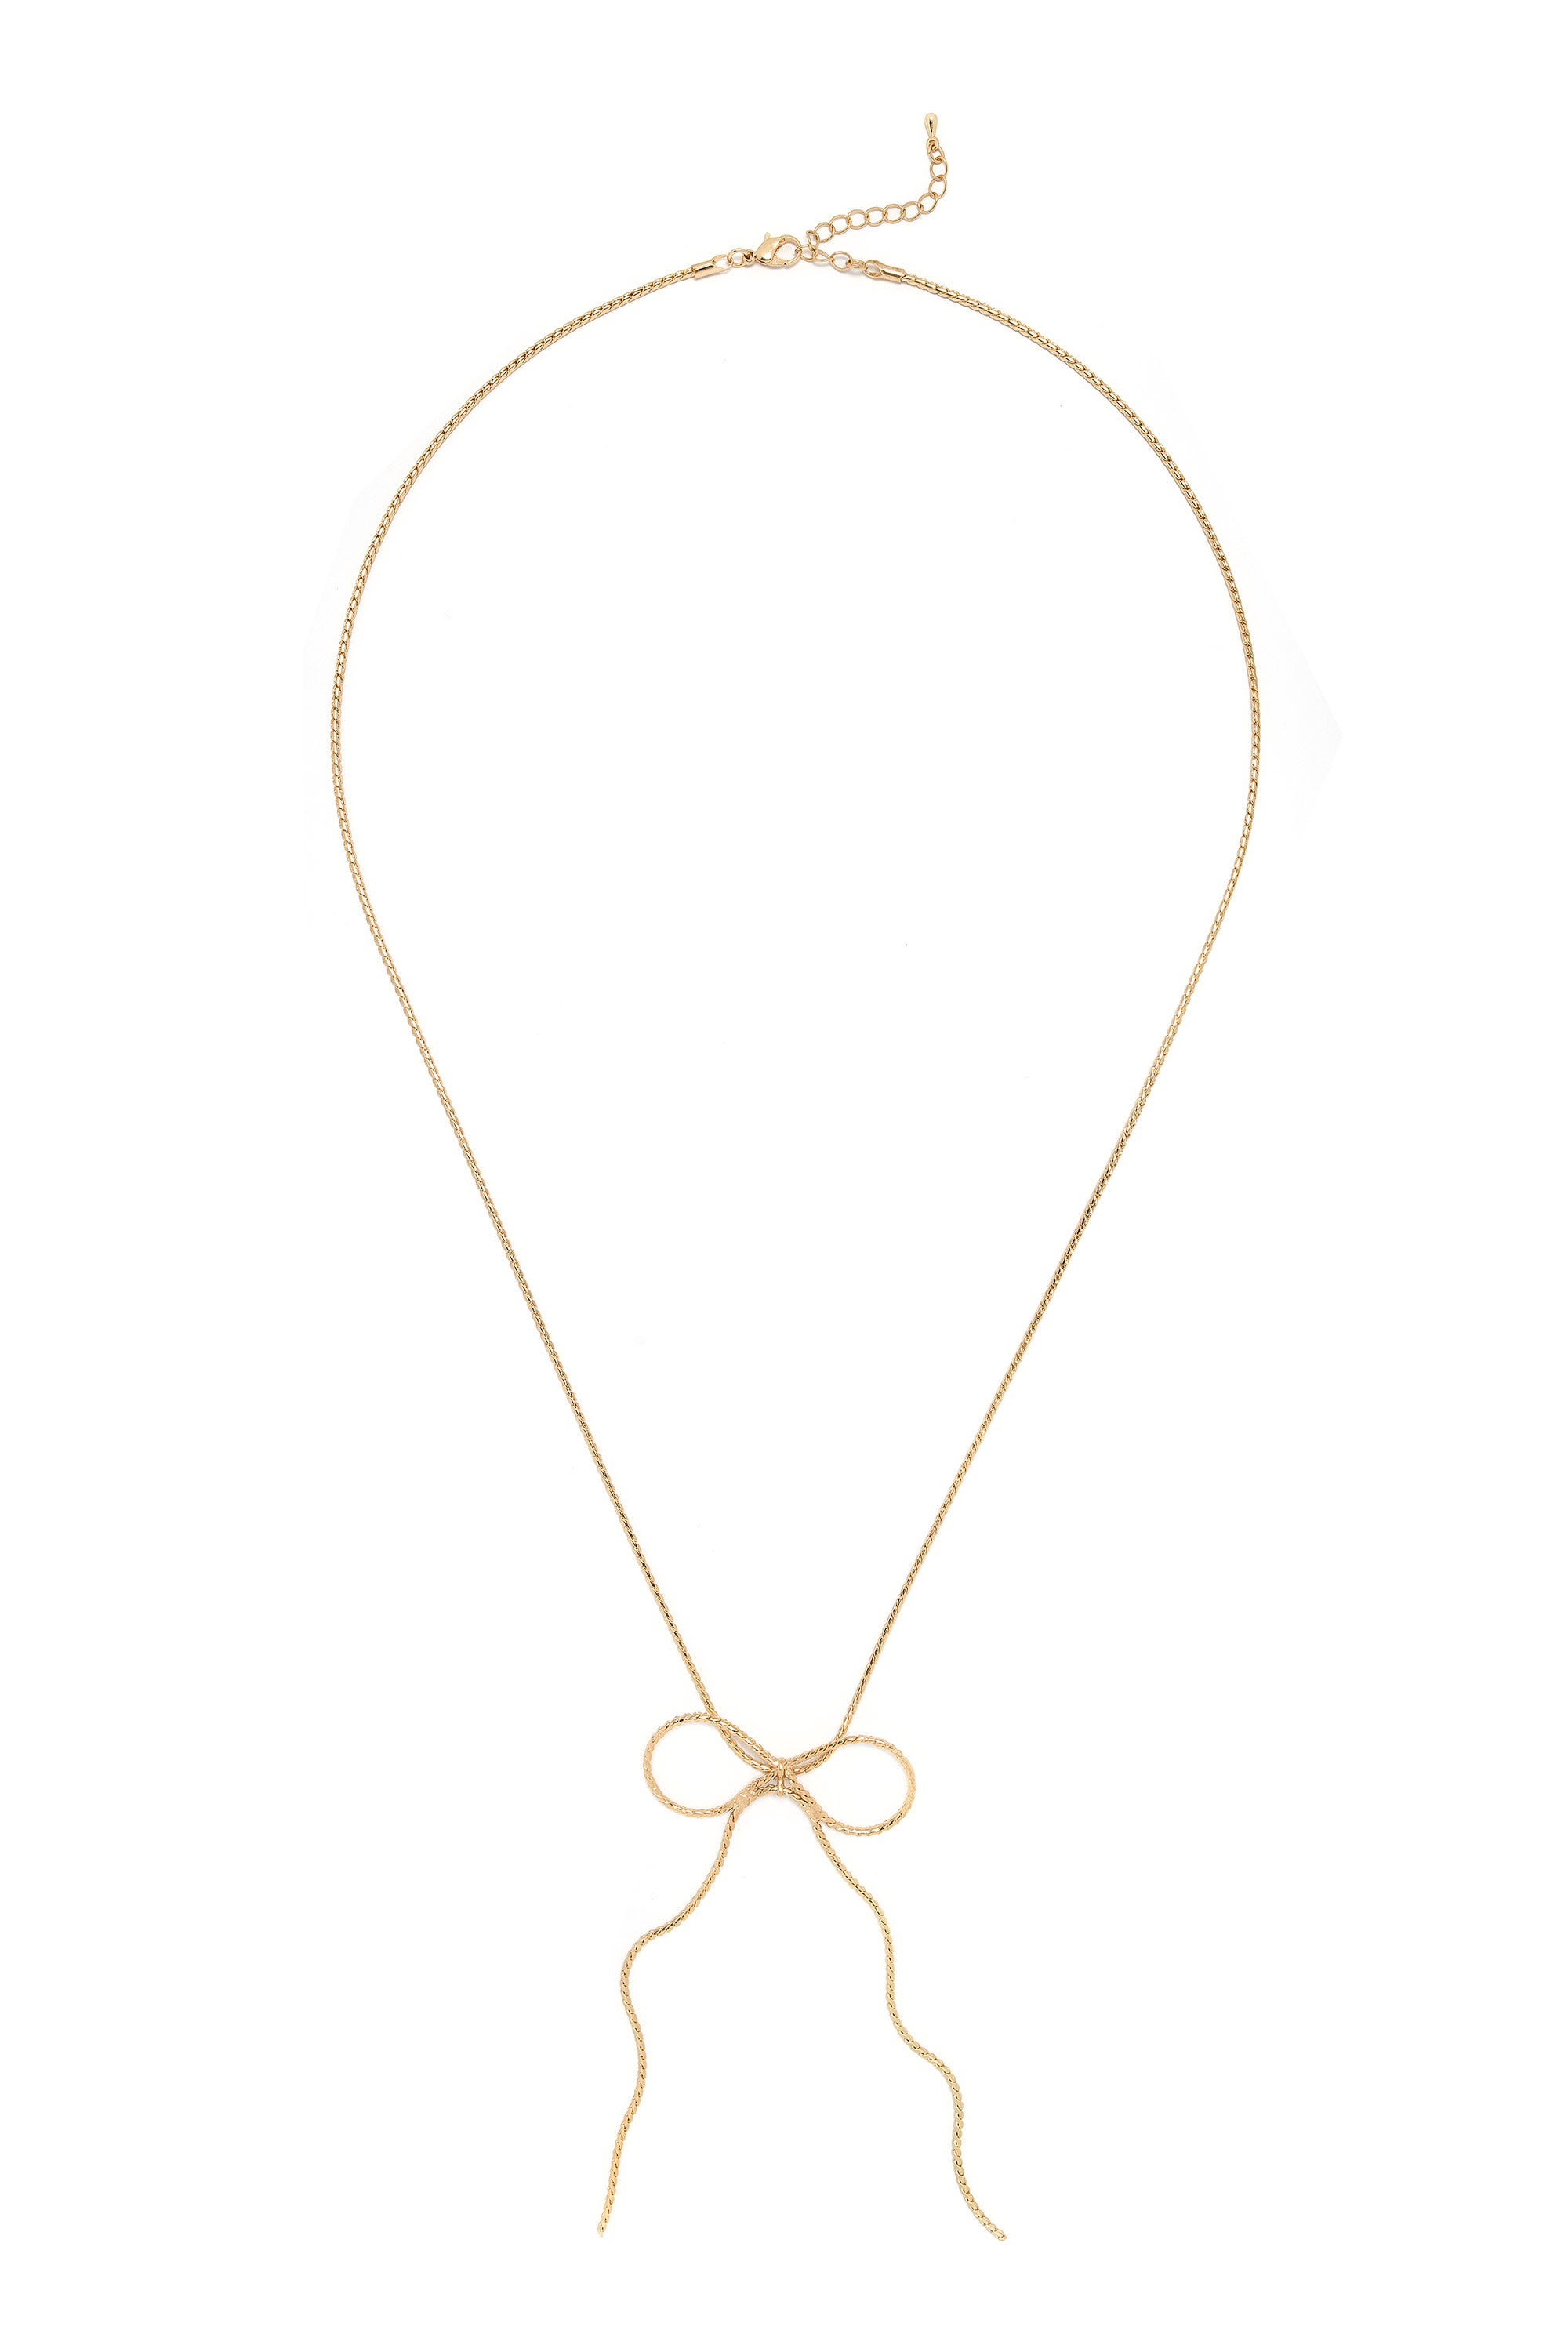 Type 1 Golden Bow Necklace